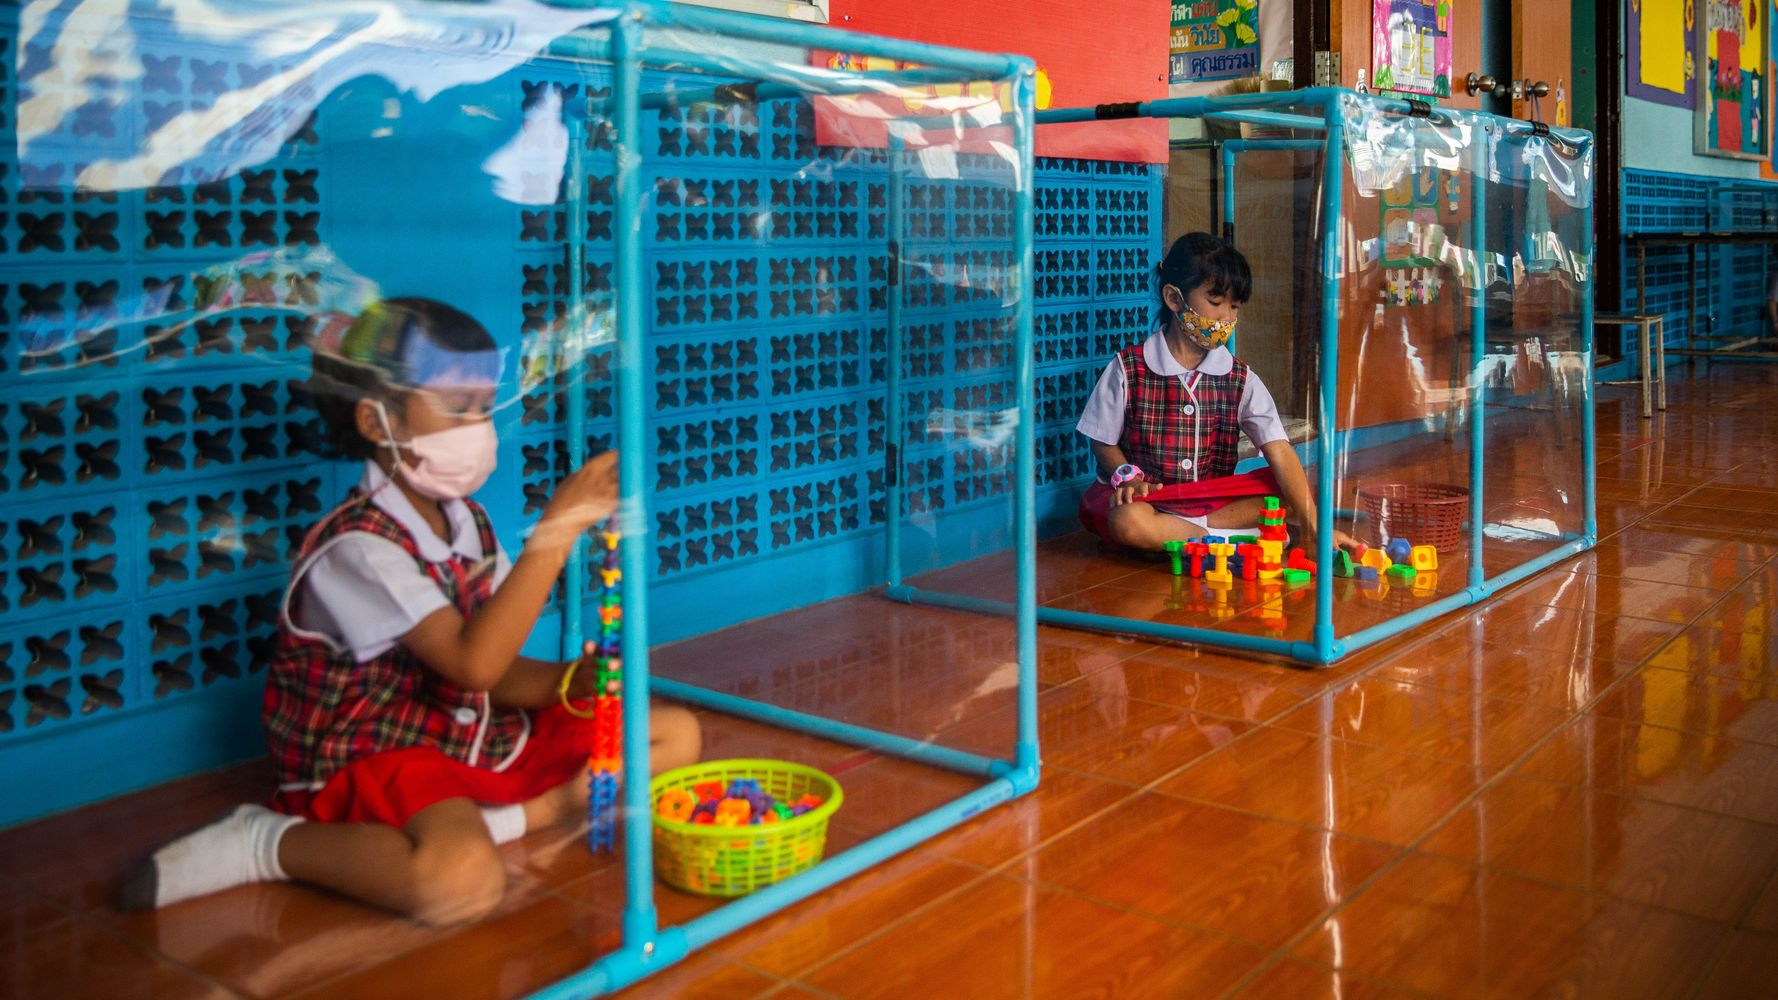 School In Thailand Uses Plastic Pens To Separate Students During Pandemic